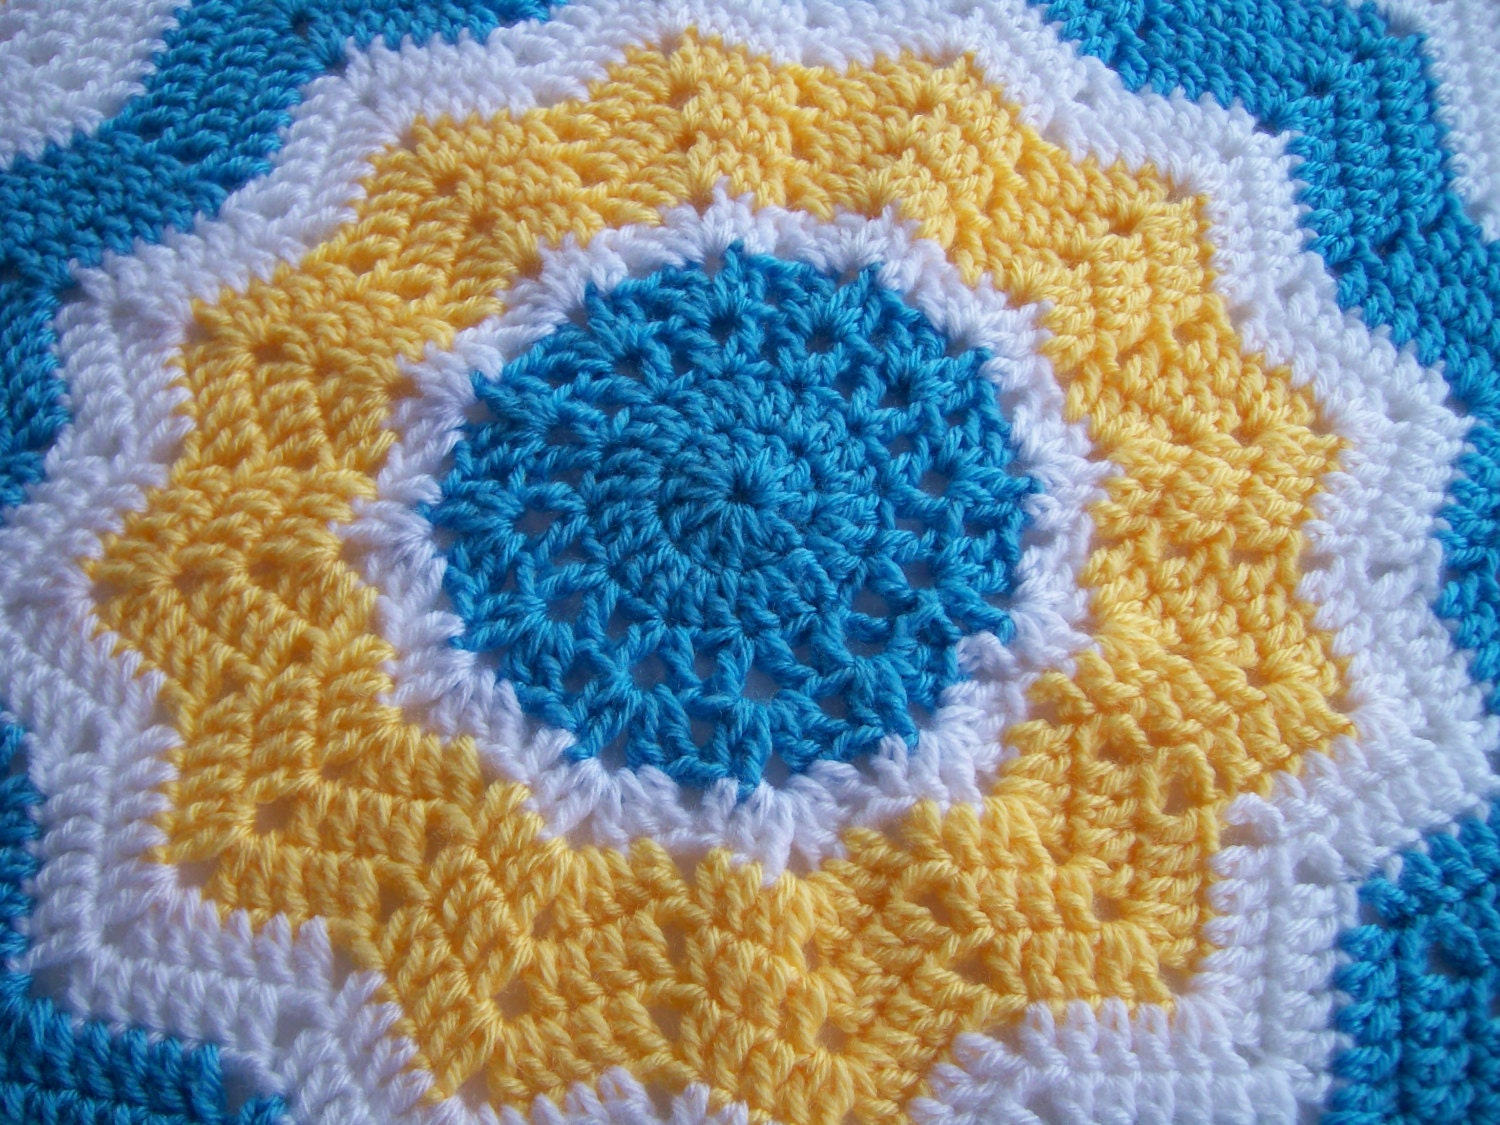 Crochet Pattern Round Ripple Afghan : Crocheted Round Ripple Baby Afghan in Blue Yellow and White